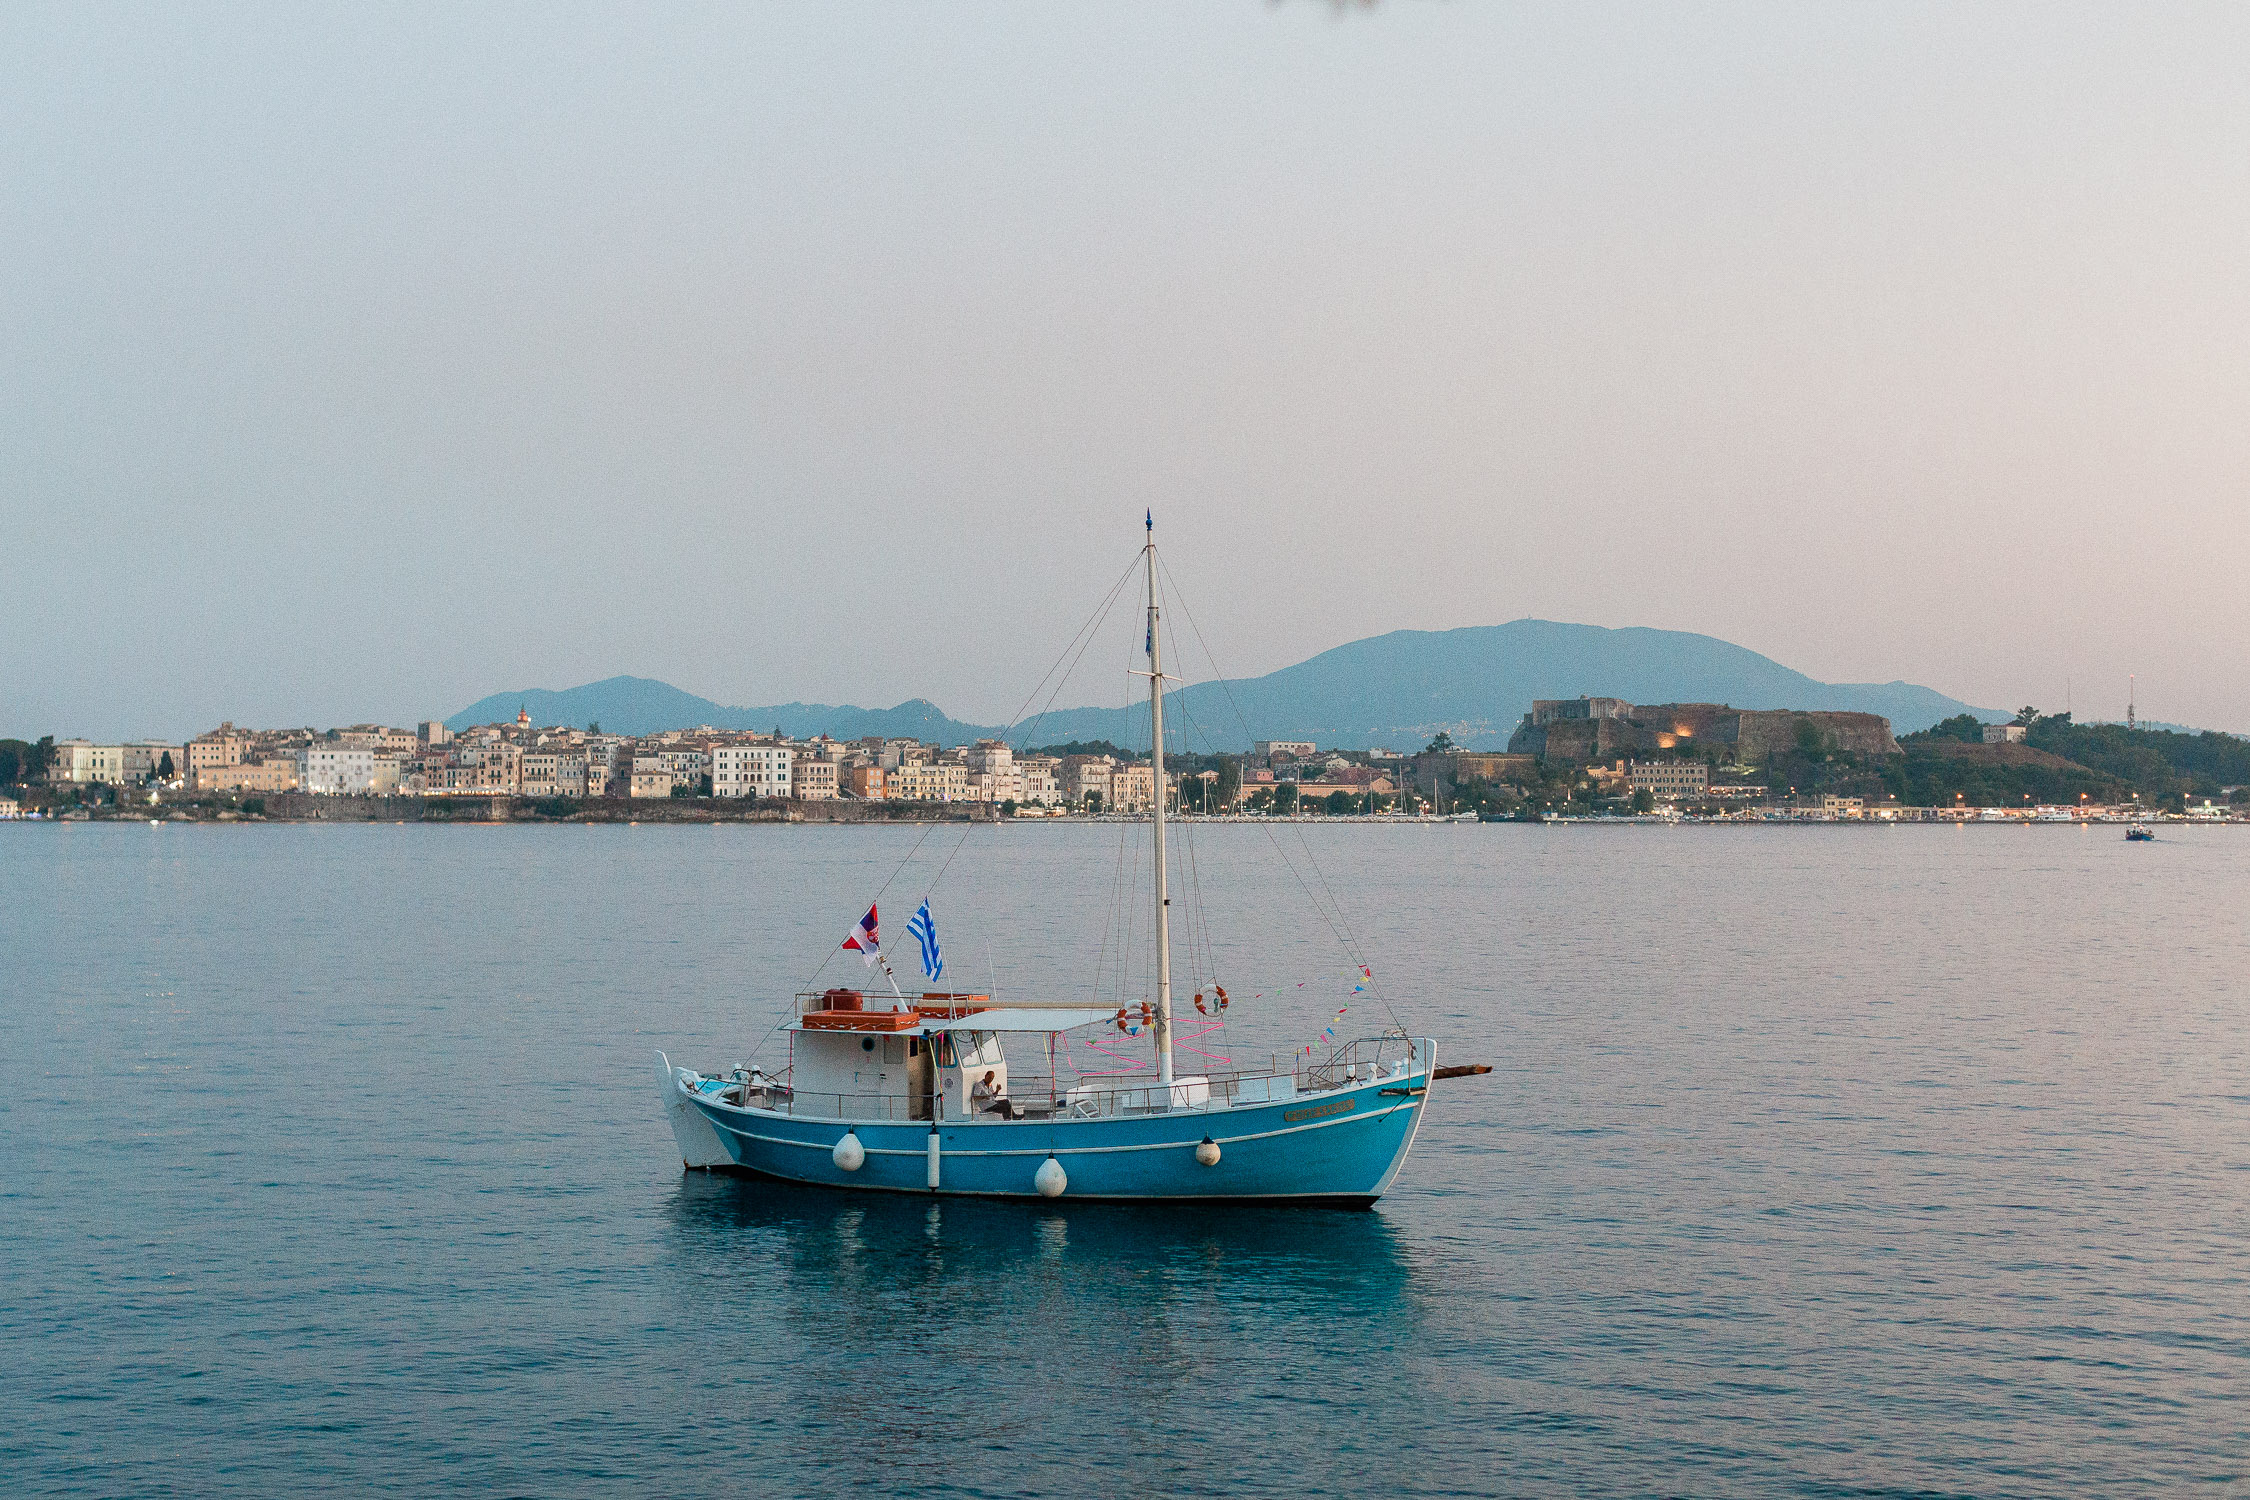 bespoke view of Corfu island while sun goes down